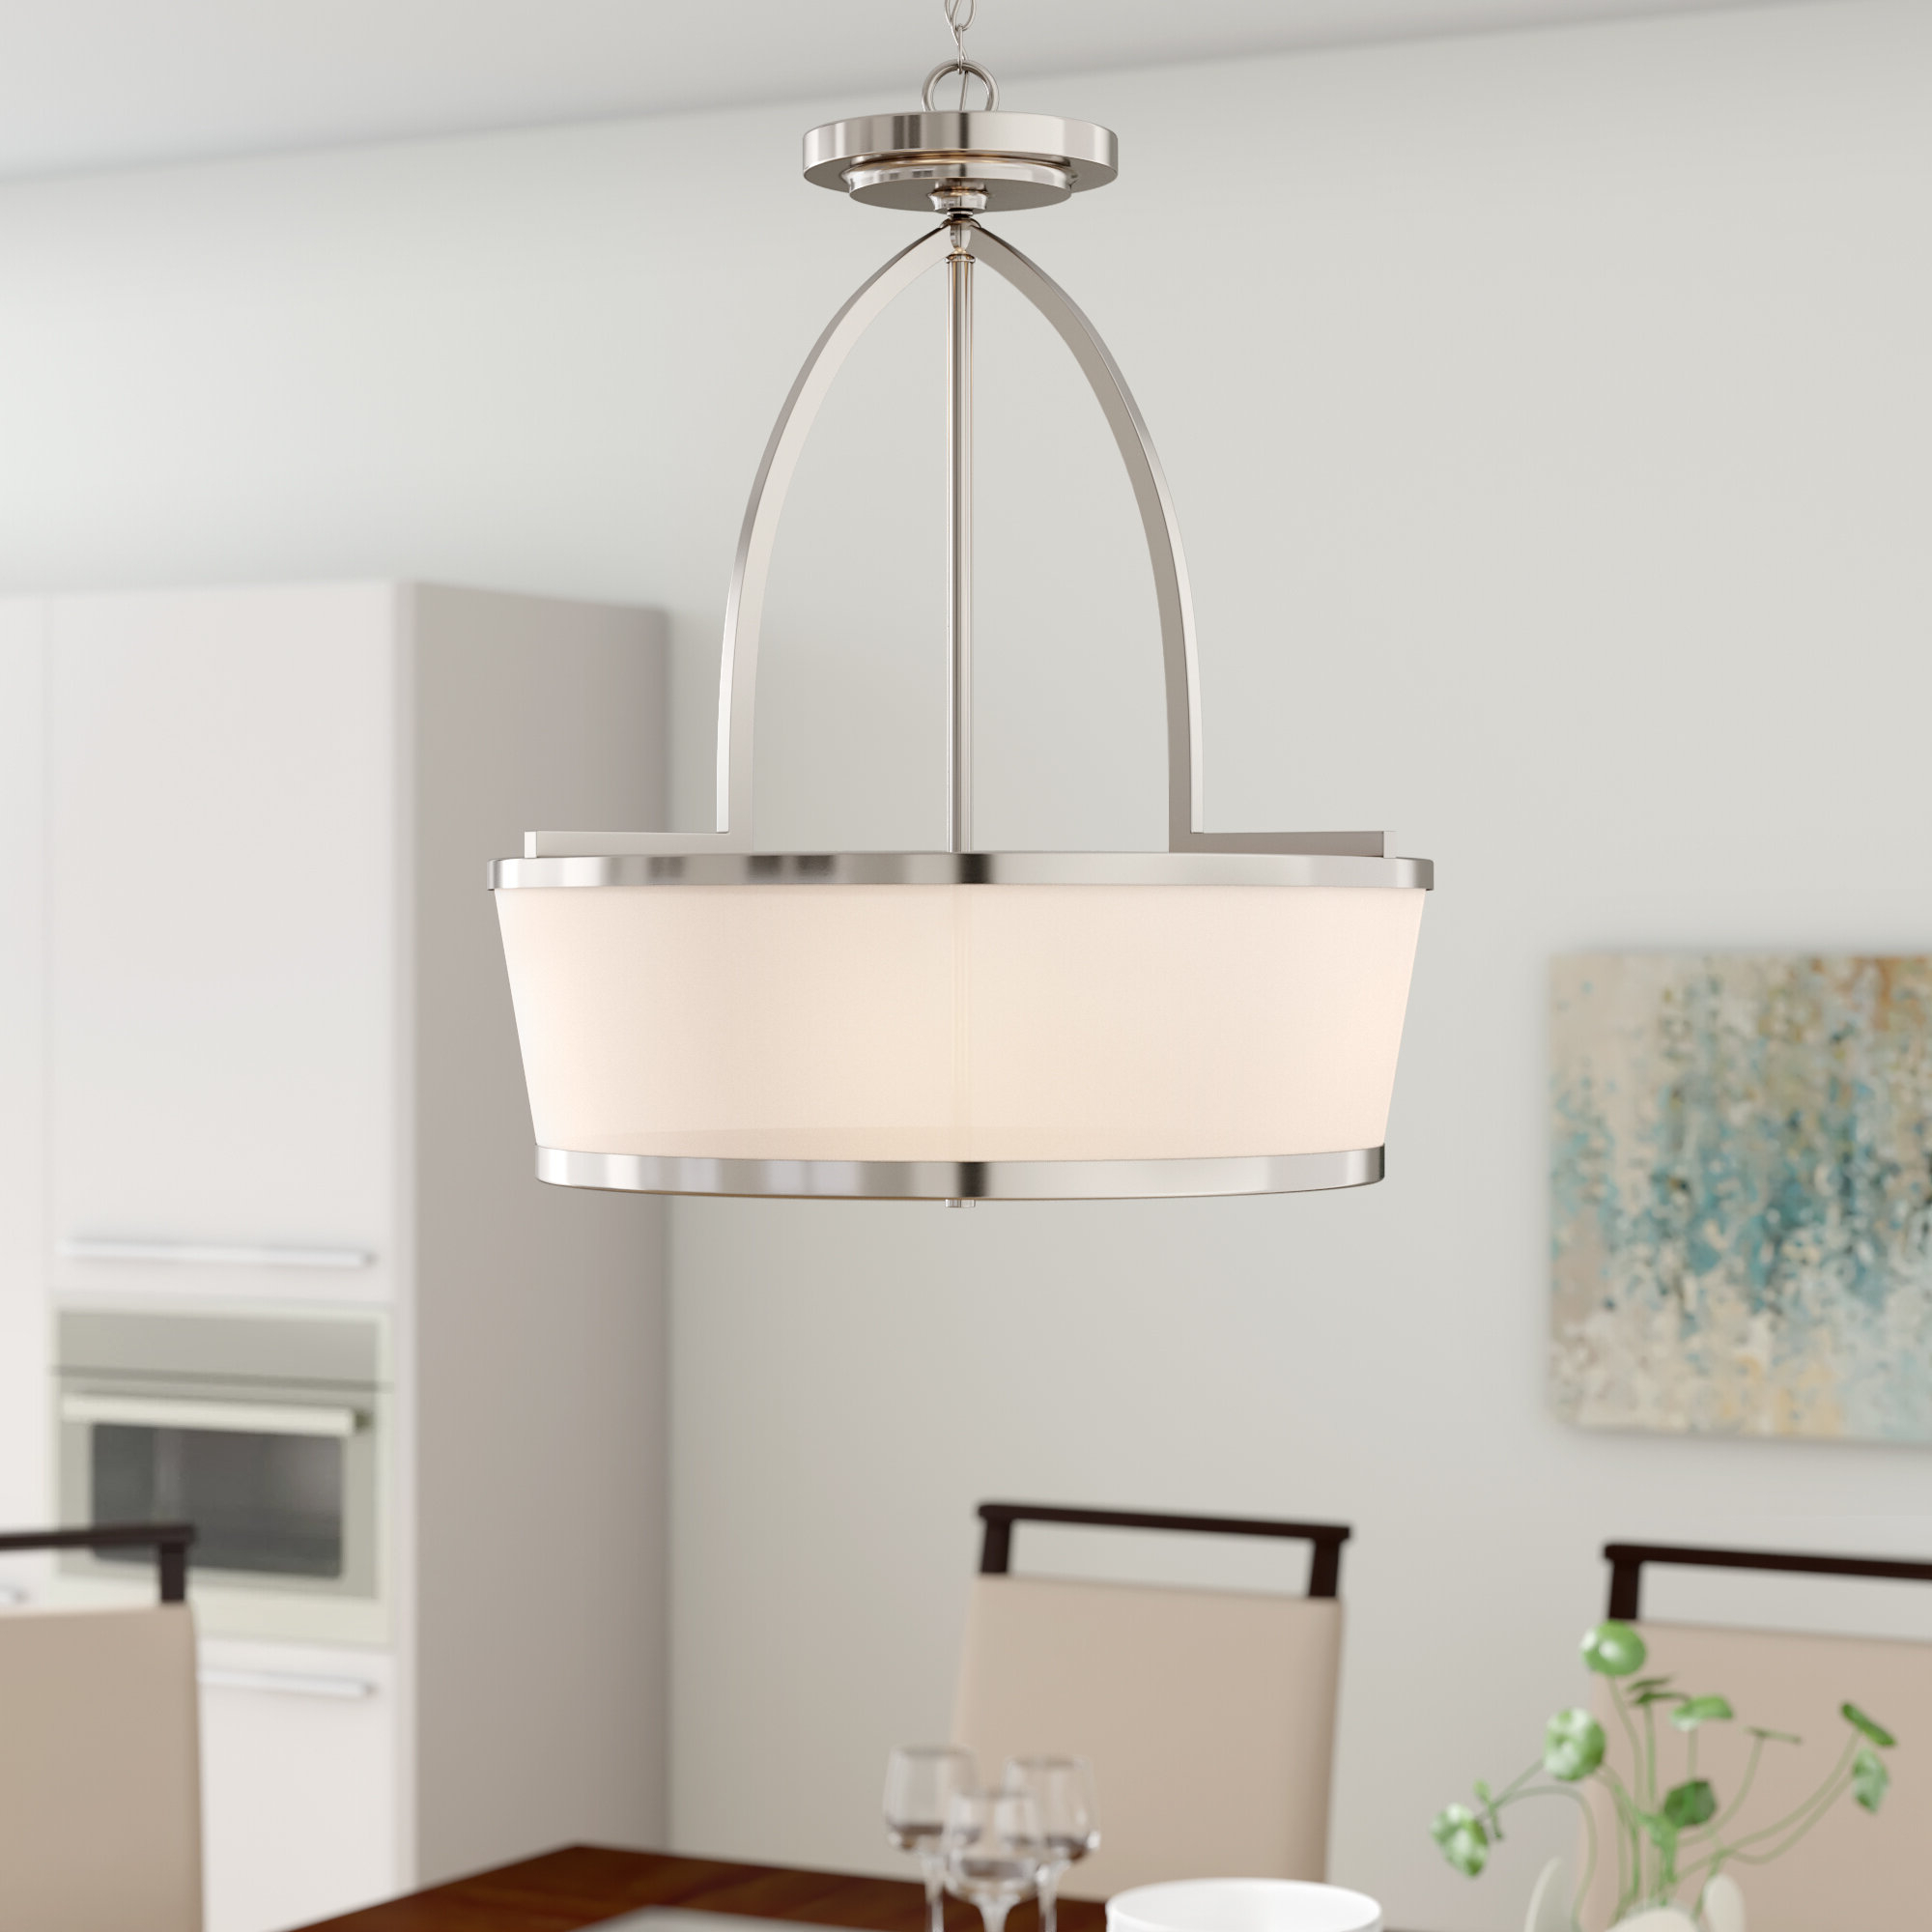 Friedland 3 Light Drum Tiered Pendants Intended For 2019 Camacho 3 Light Single Drum Pendant (View 5 of 20)